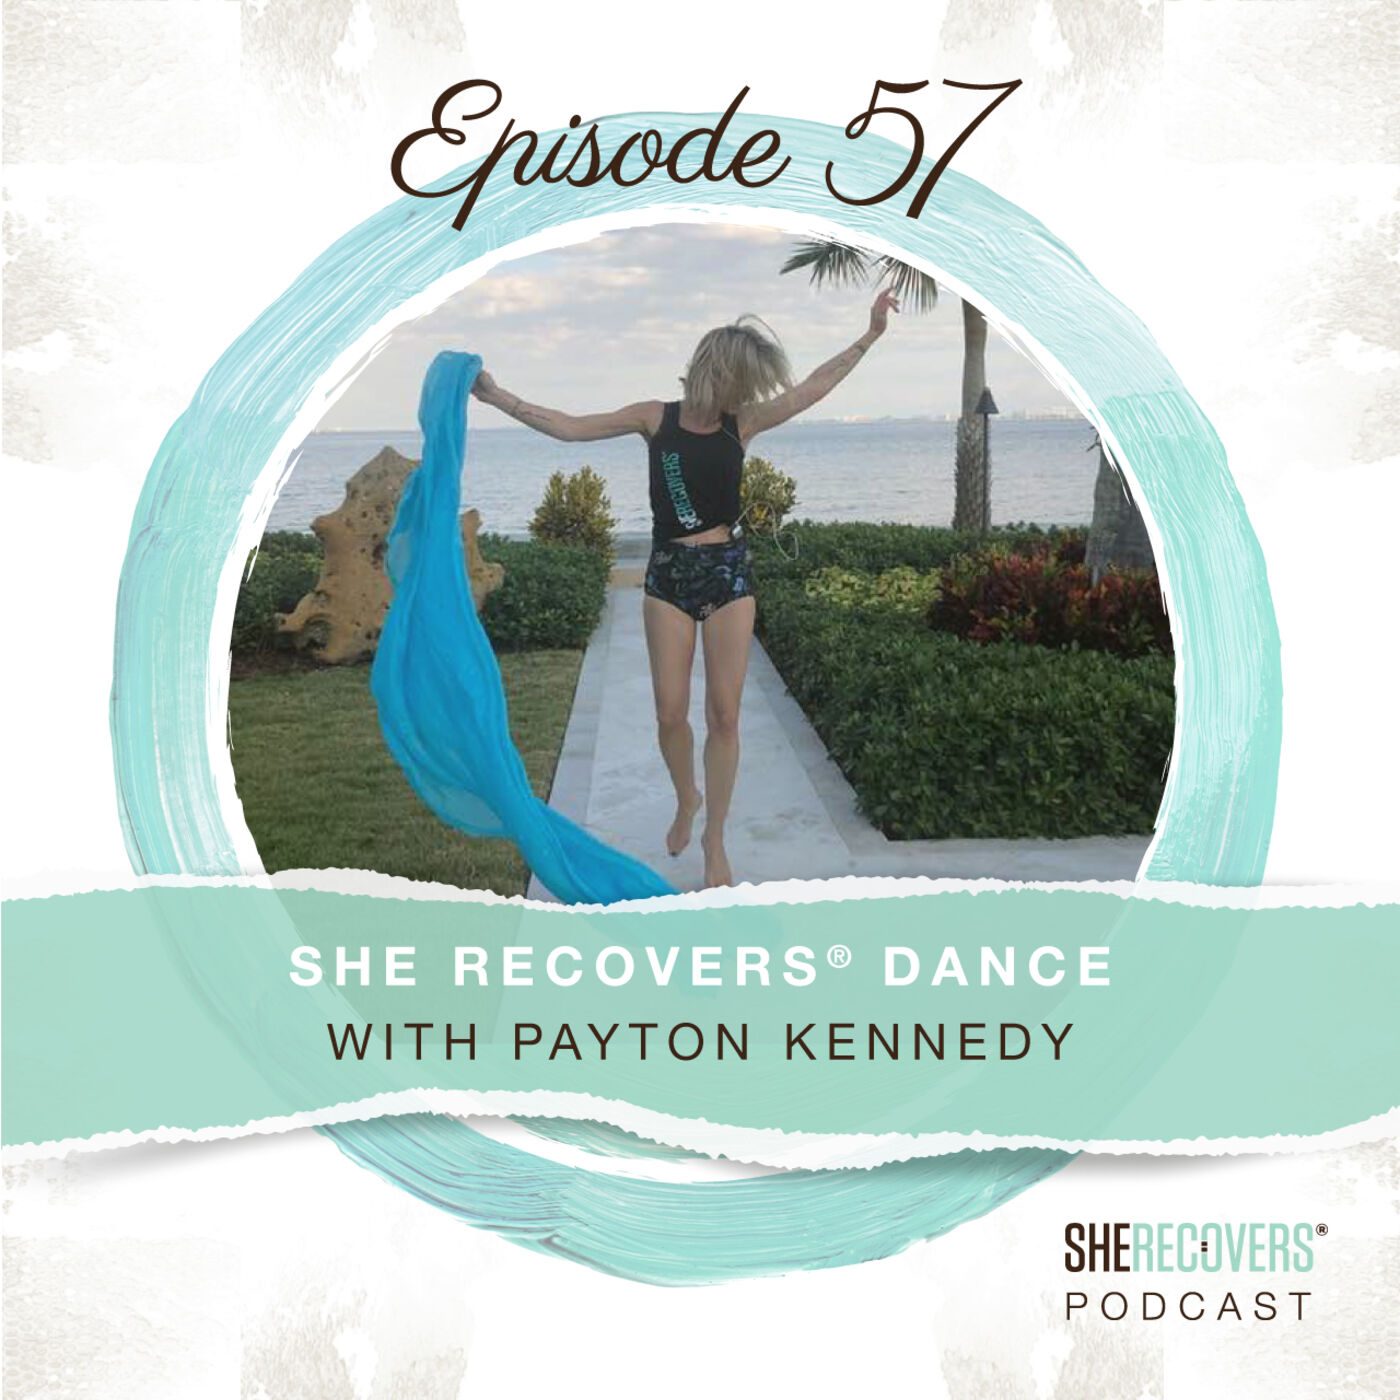 Episode 57: SHE RECOVERS Dance with Payton Kennedy